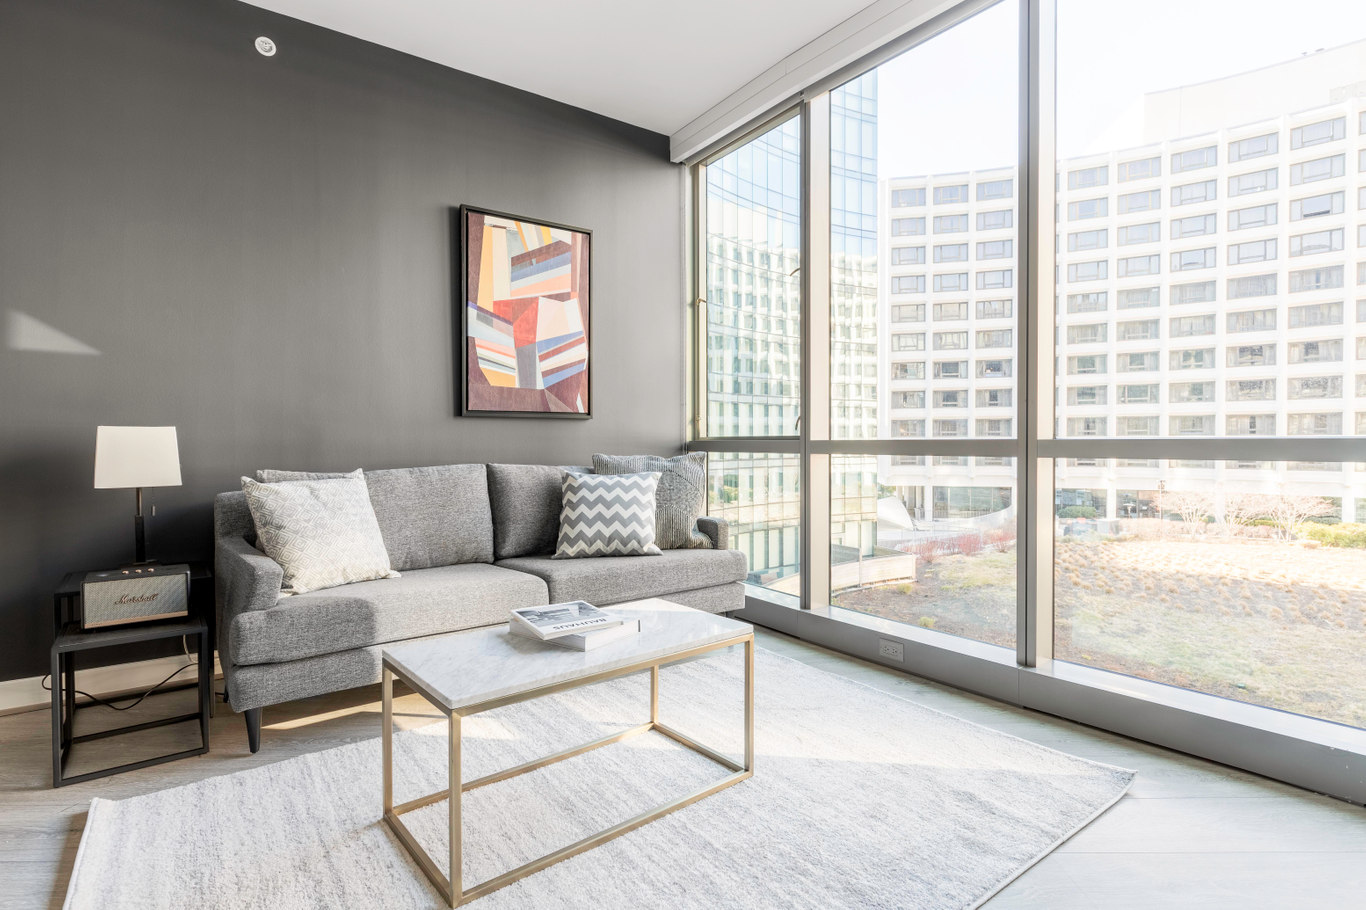 Studio furnished apartment in Crossing, 949 First St SE 300, Navy Yard, Washington D.C., photo 1